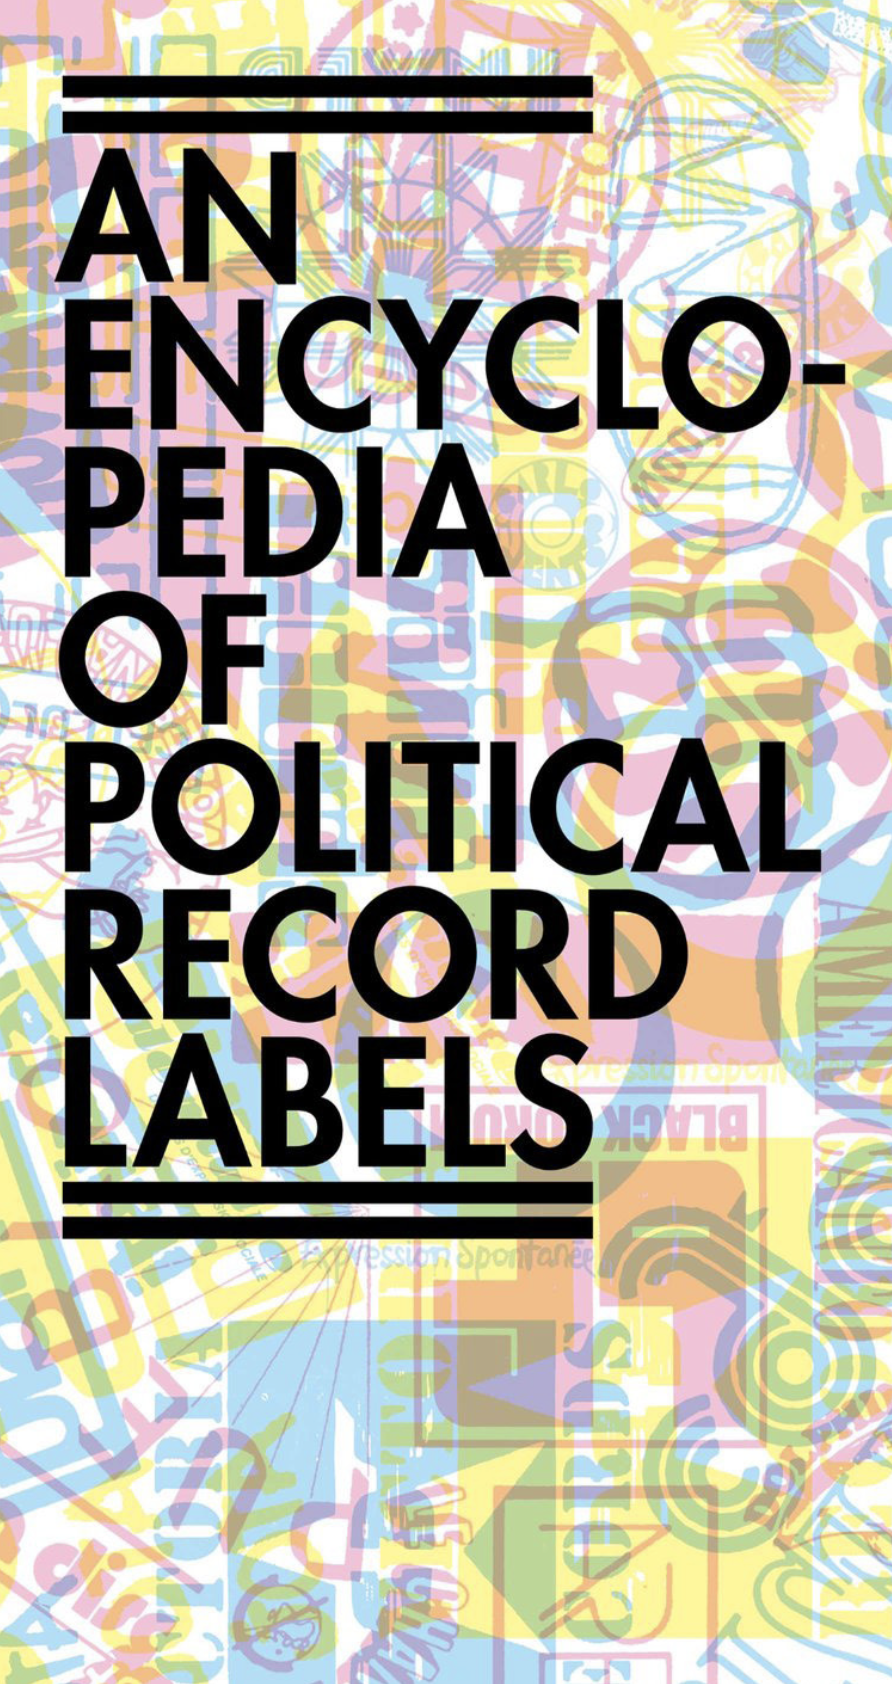 Book Launch: An Encyclopedia of Political Record Labels by Josh MacPhee in conversation with Johnny Temple